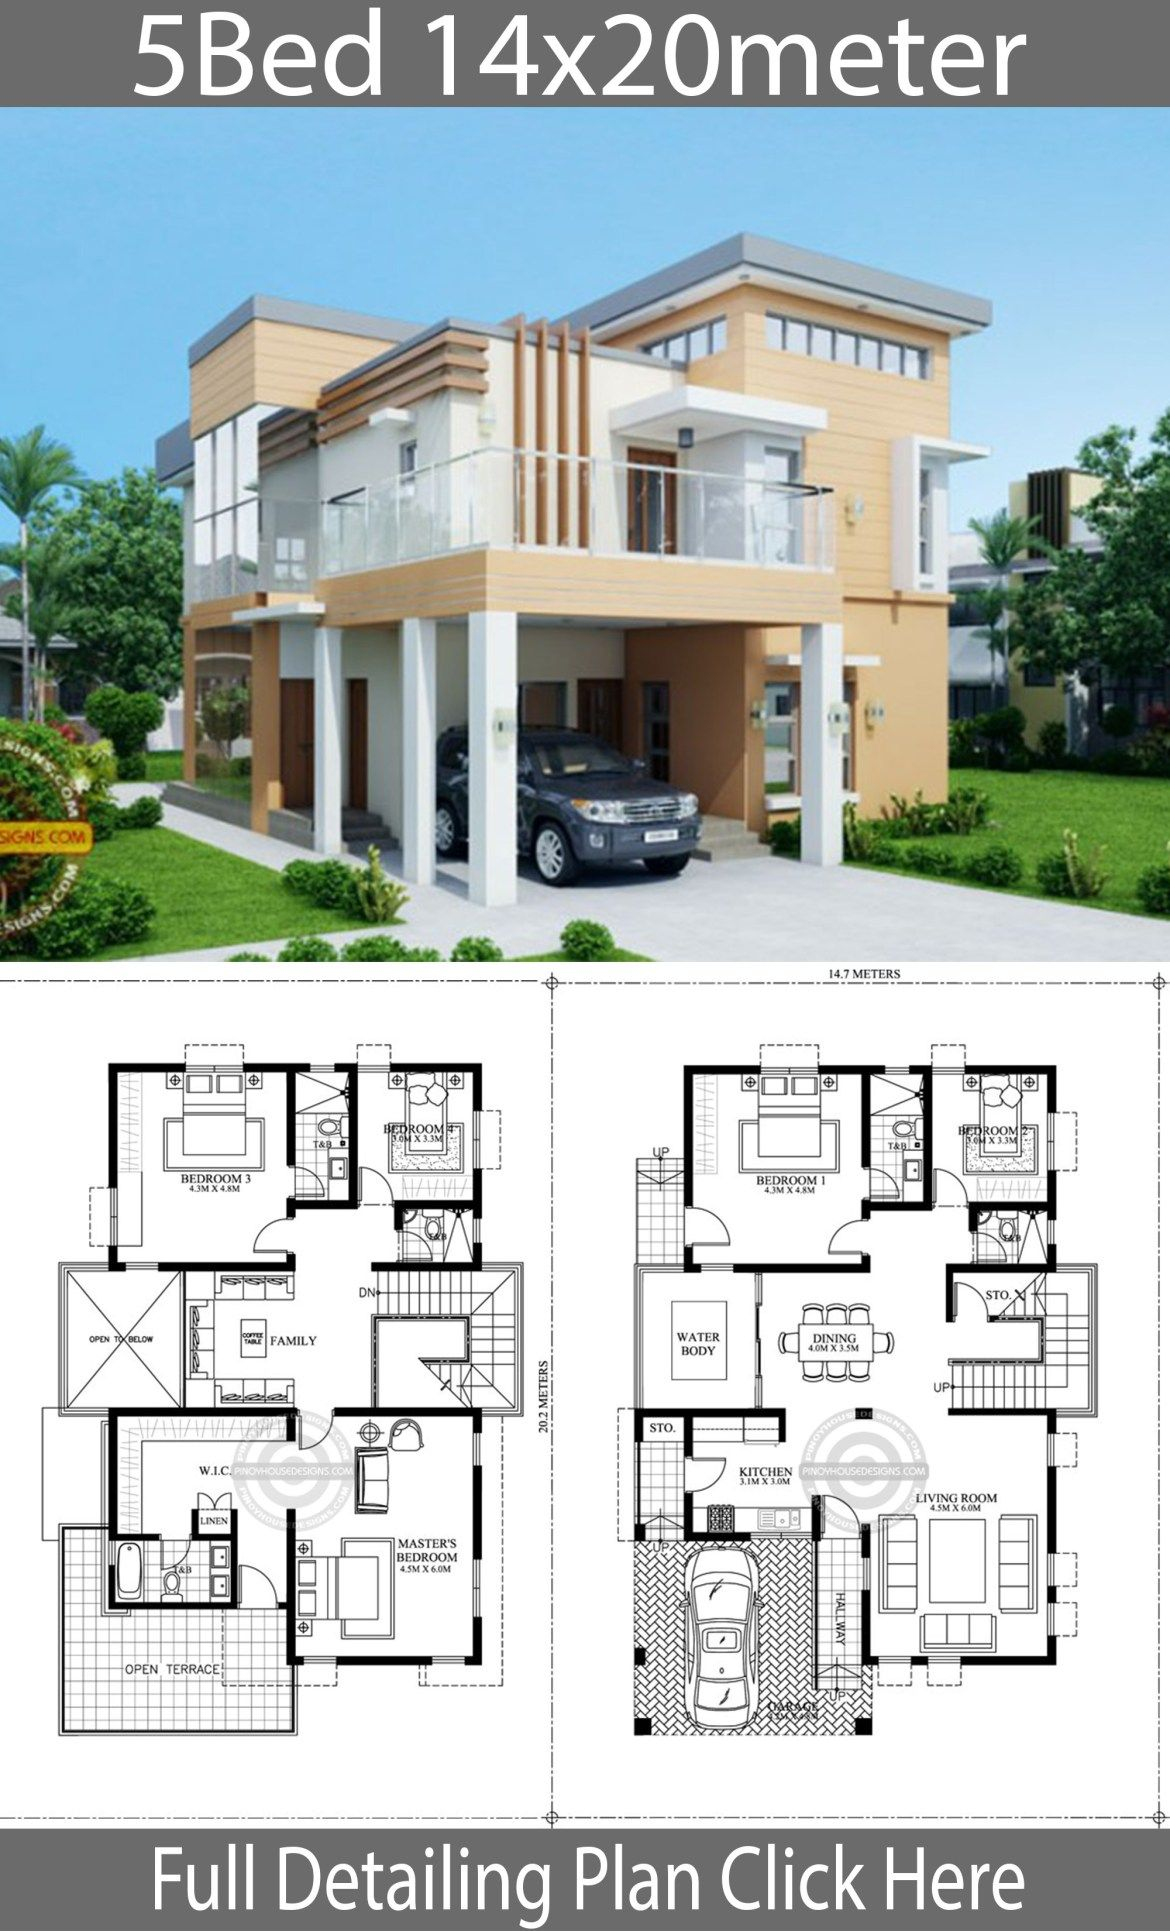 Home Design Plan 14x20m With 5 Bedrooms Home Building Design Kerala House Design Architectural House Plans